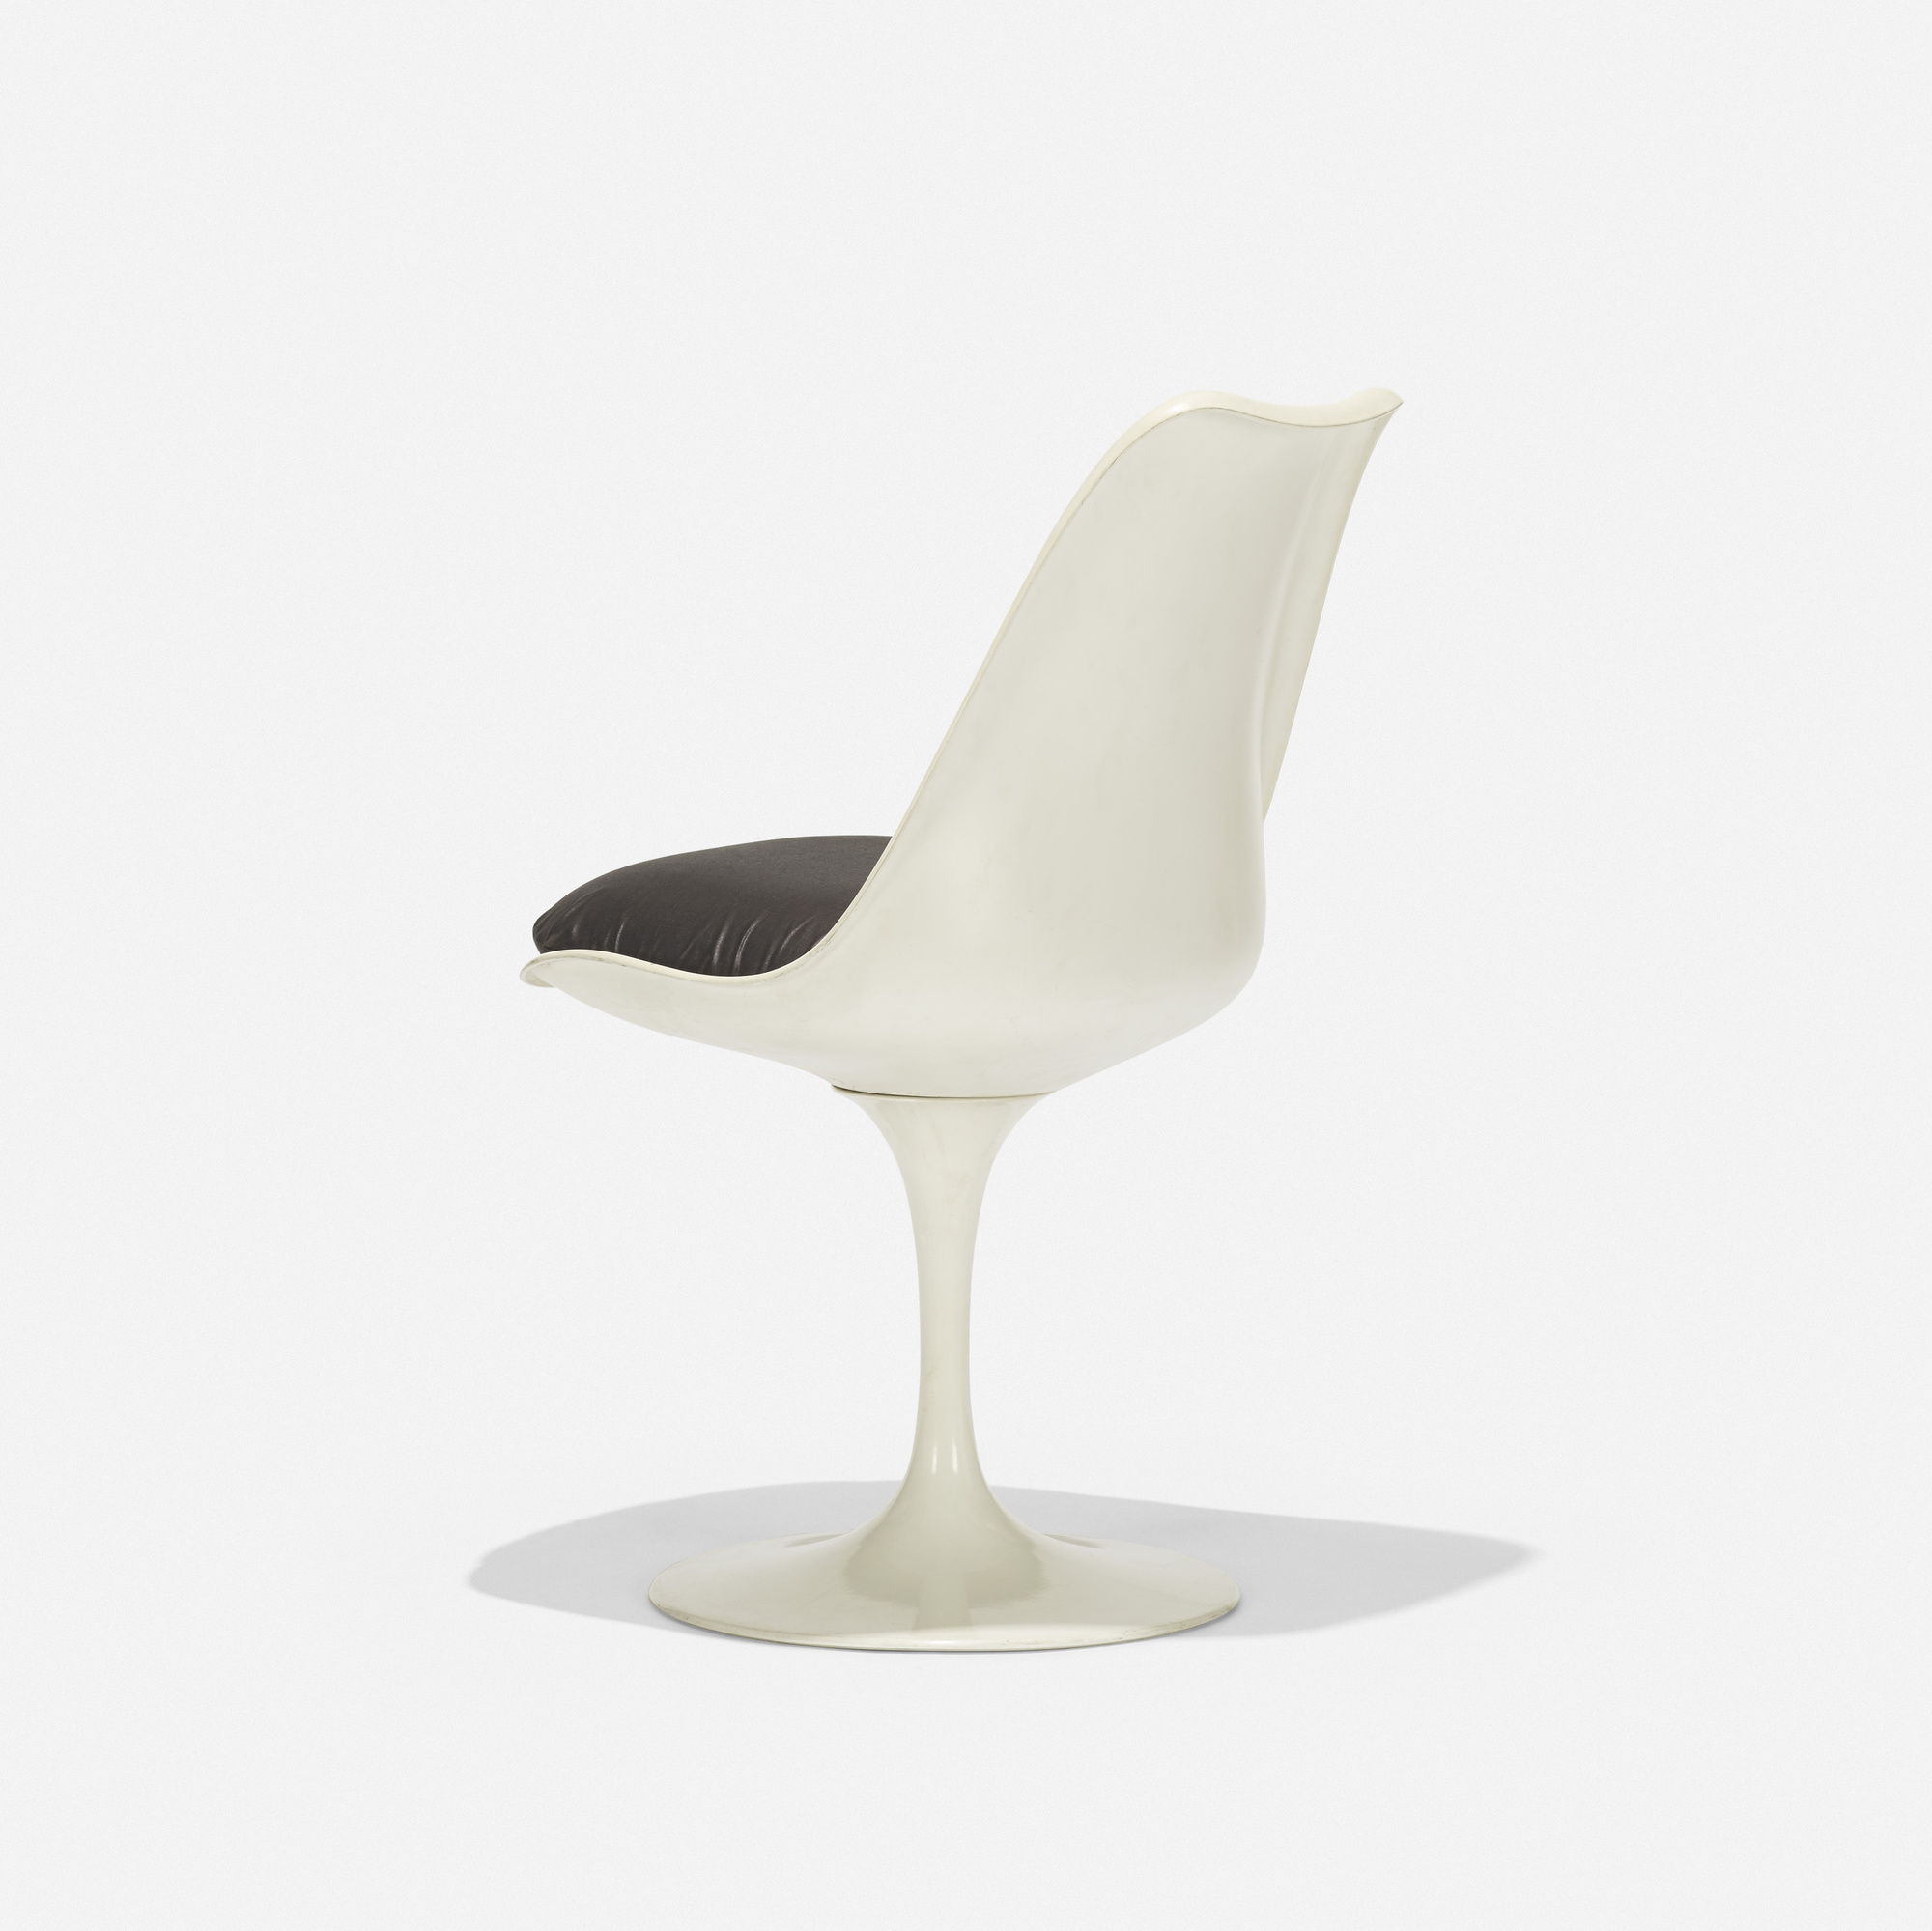 121: Eero Saarinen / Tulip chair (1 of 3)